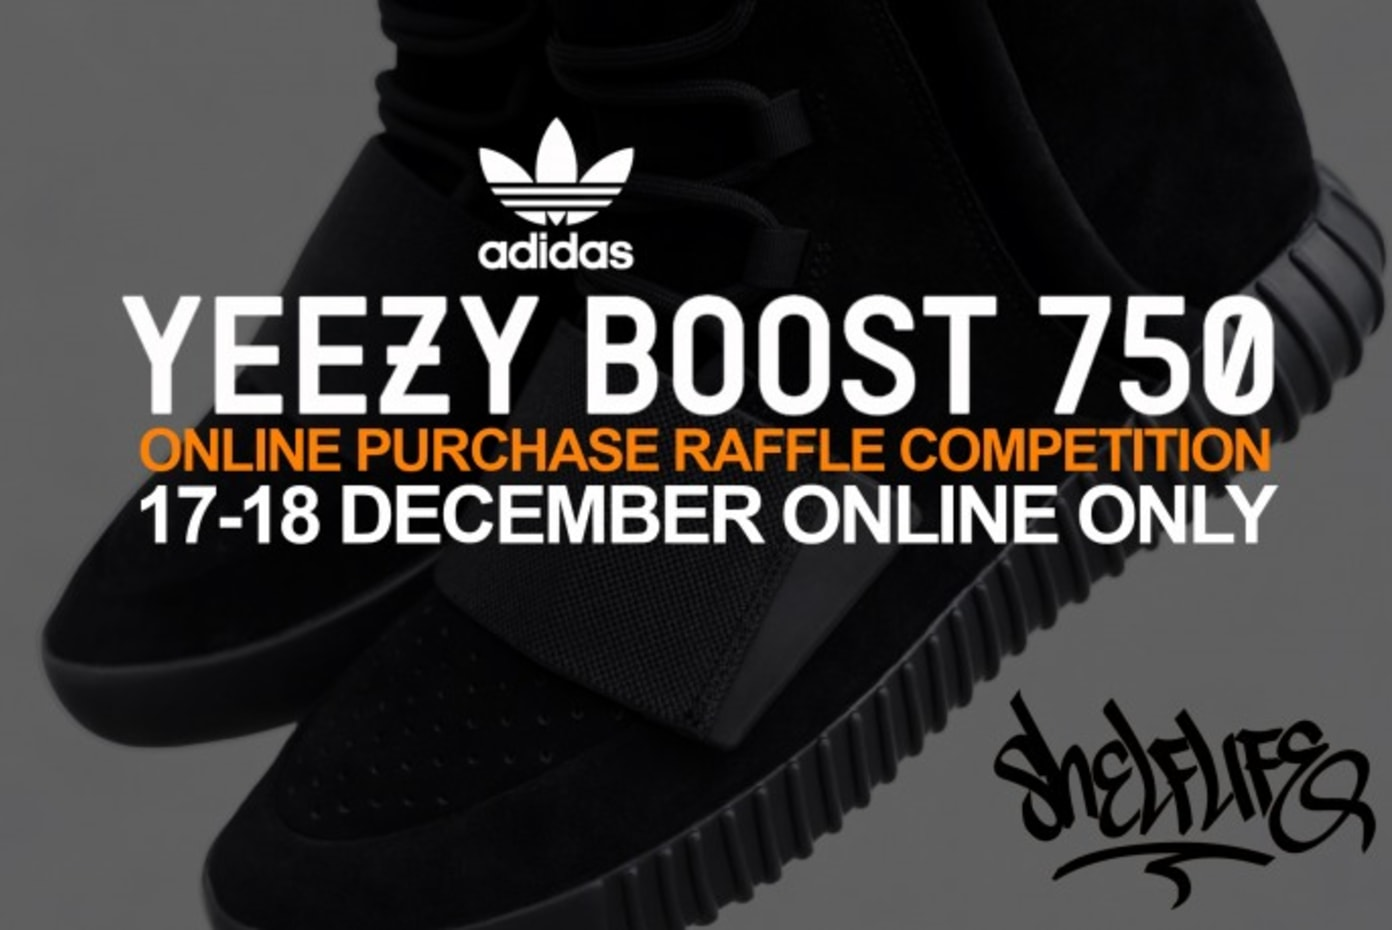 Yeezy Boost 750 Triple Black - Online Purchase Raffle Competition